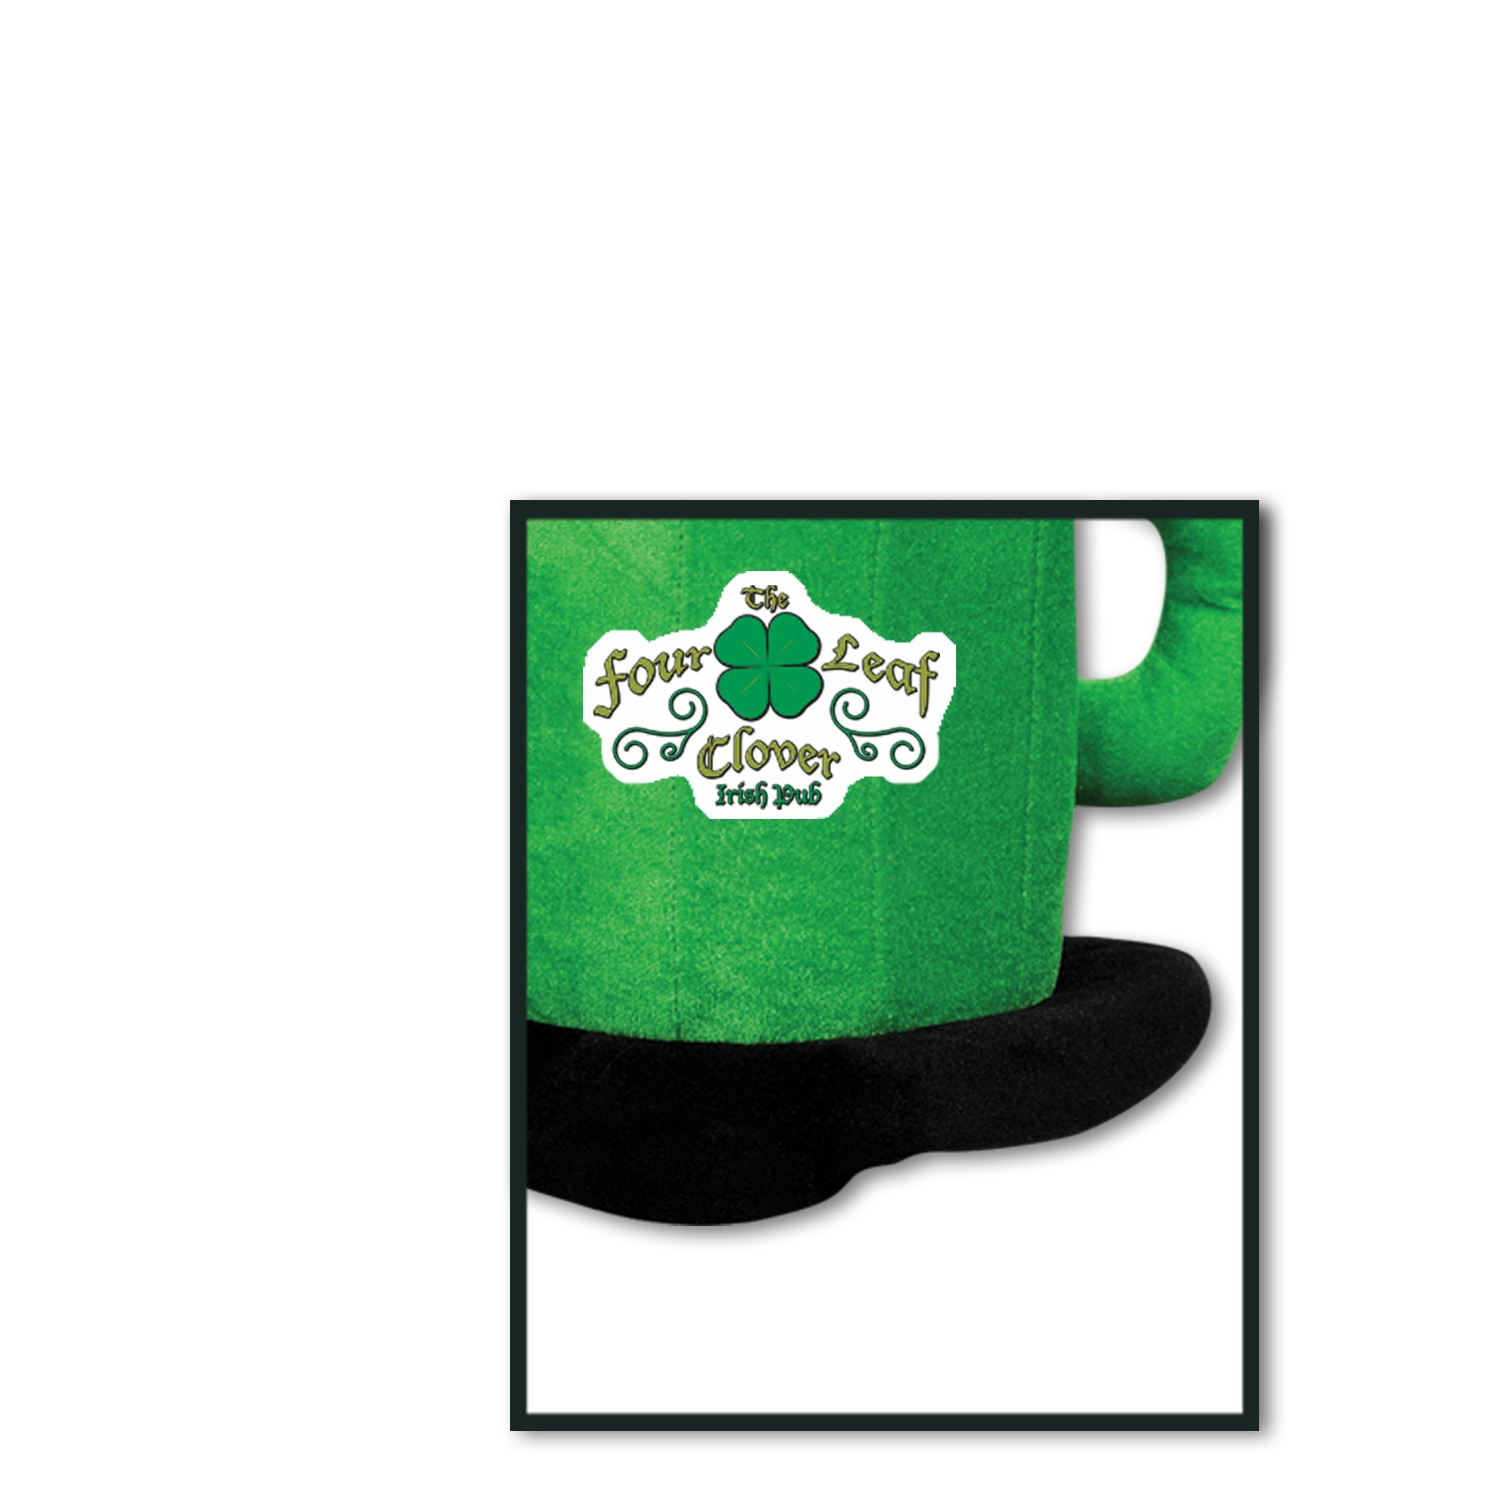 Custom Imprinted Beer Hats Custom Imprinted Beer Hats, beer, hats, st. patricks day, wholesale, inexpensive, bulk, custom